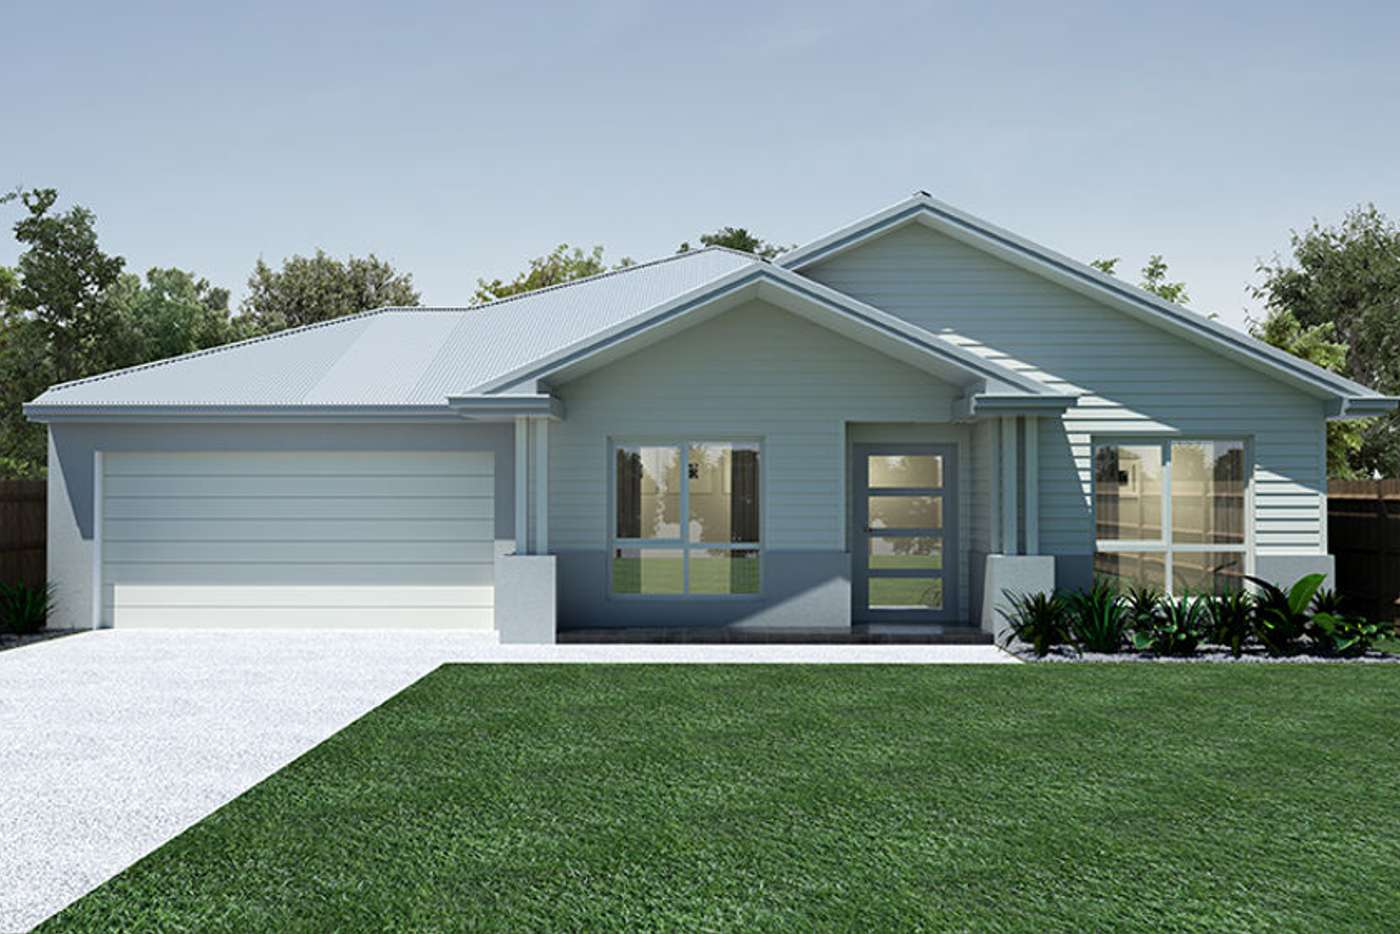 Main view of Homely residentialLand listing, 13 First Avenue - LOT 1, Marsden QLD 4132